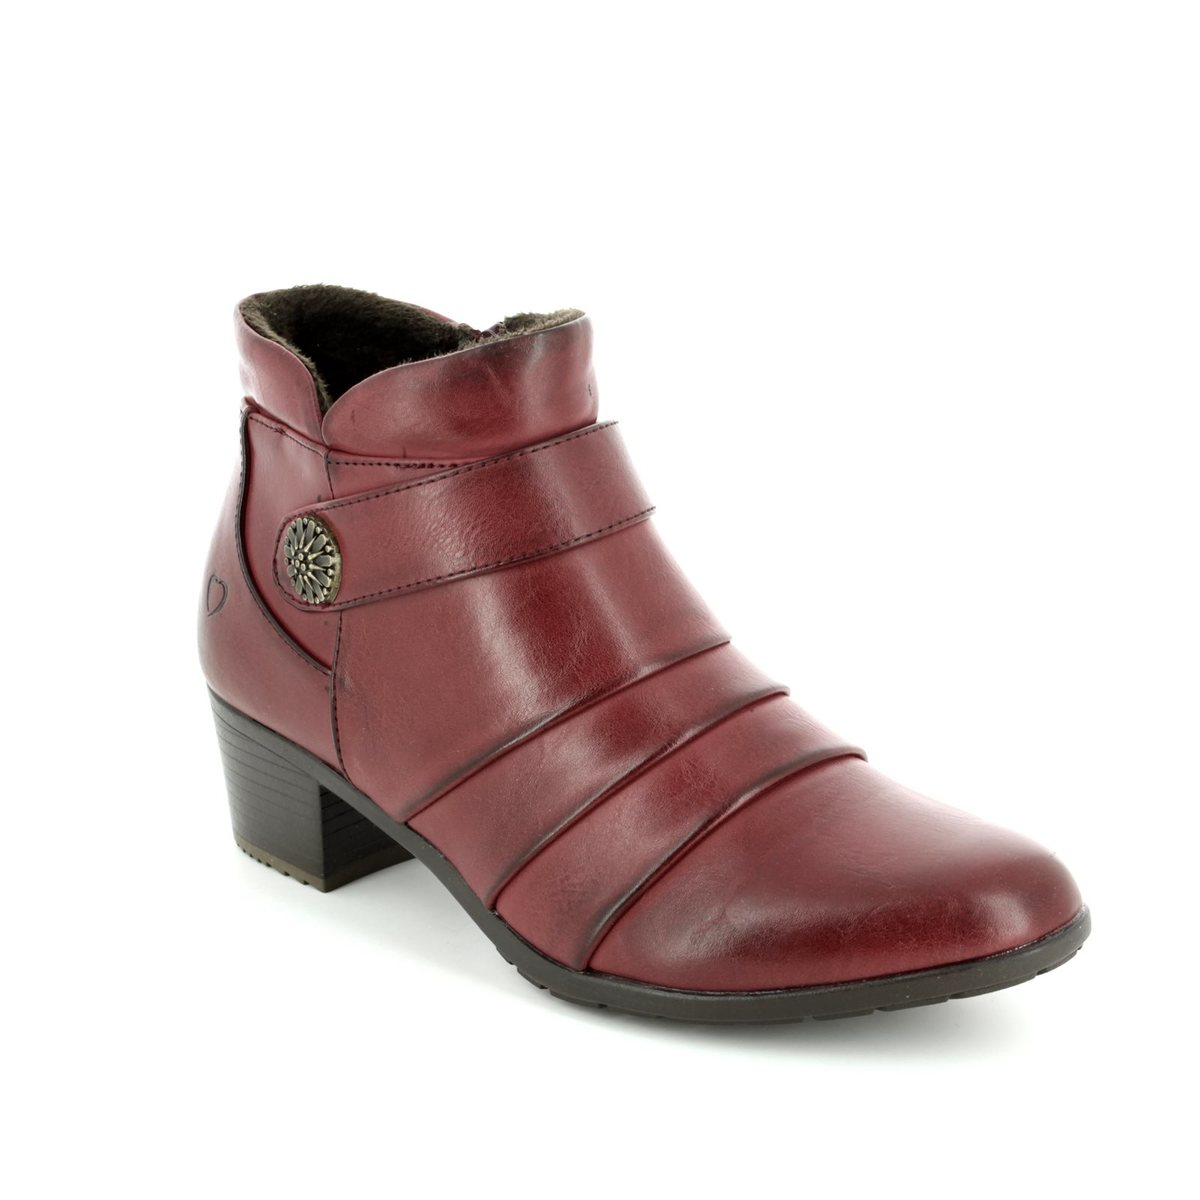 8a8e0d9c067784 Heavenly Feet Ankle Boots - Wine - 7205 80 CLAIRE